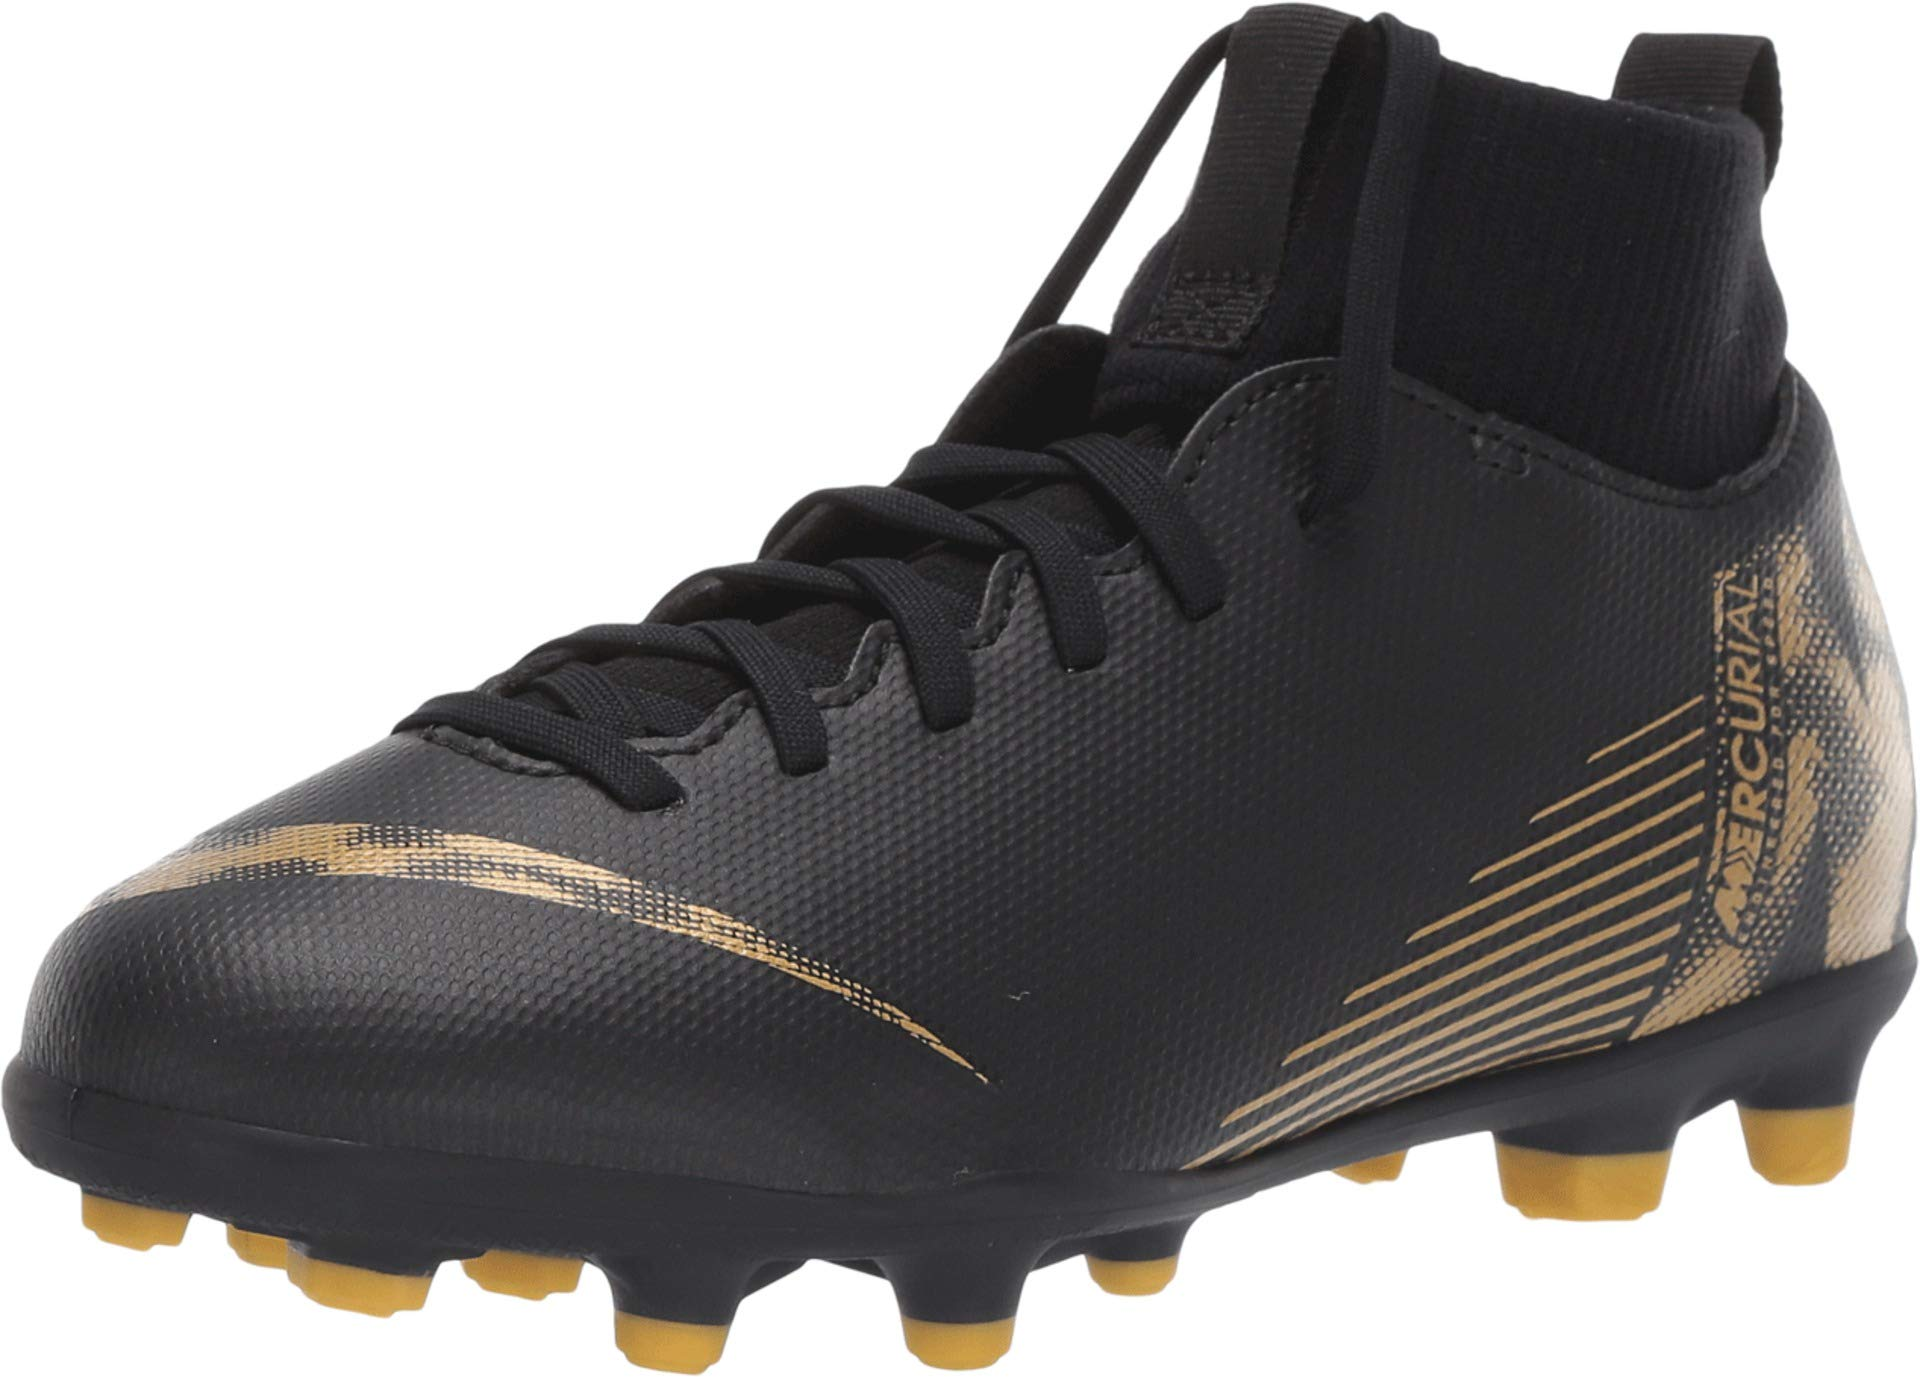 Nike Kids Jr Superfly 6 Club (MG) Soccer Cleat Black/Metallic Vivid Gold Size 4 M US by Nike